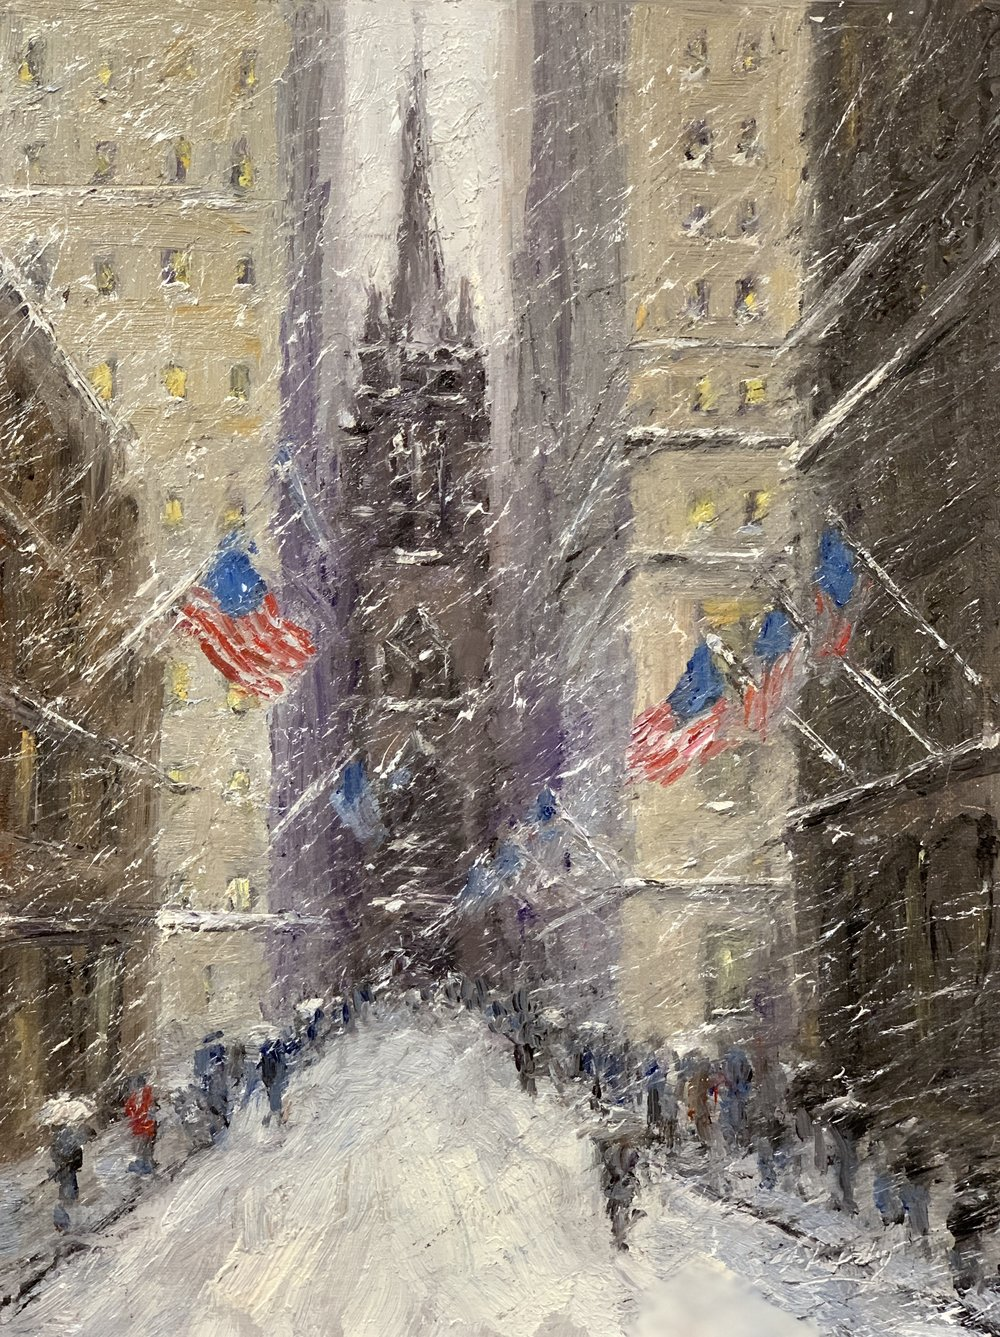 Old Trinity Flags, oil, 12 x 9, SLR by Mark Daly. Sold by Rehs Galleries.